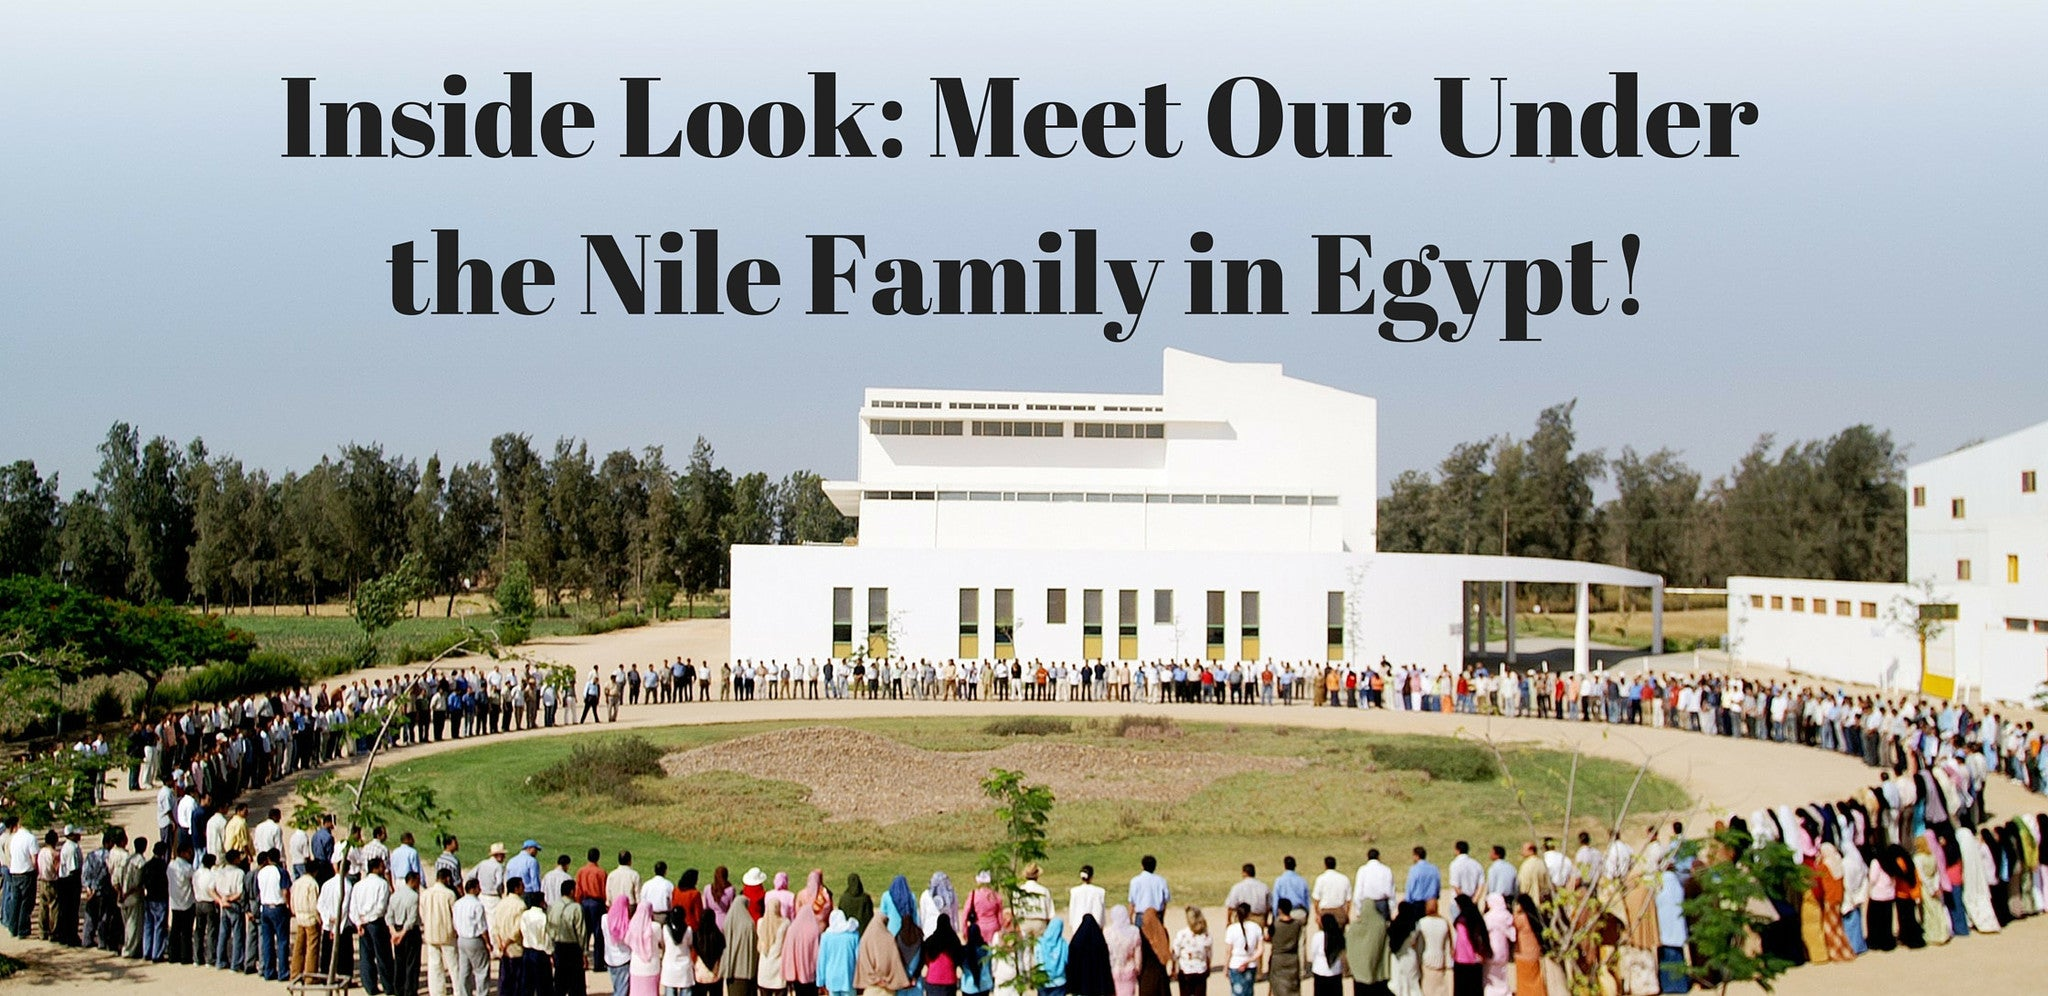 Inside Look: Meet Our Under the Nile Family in Egypt!